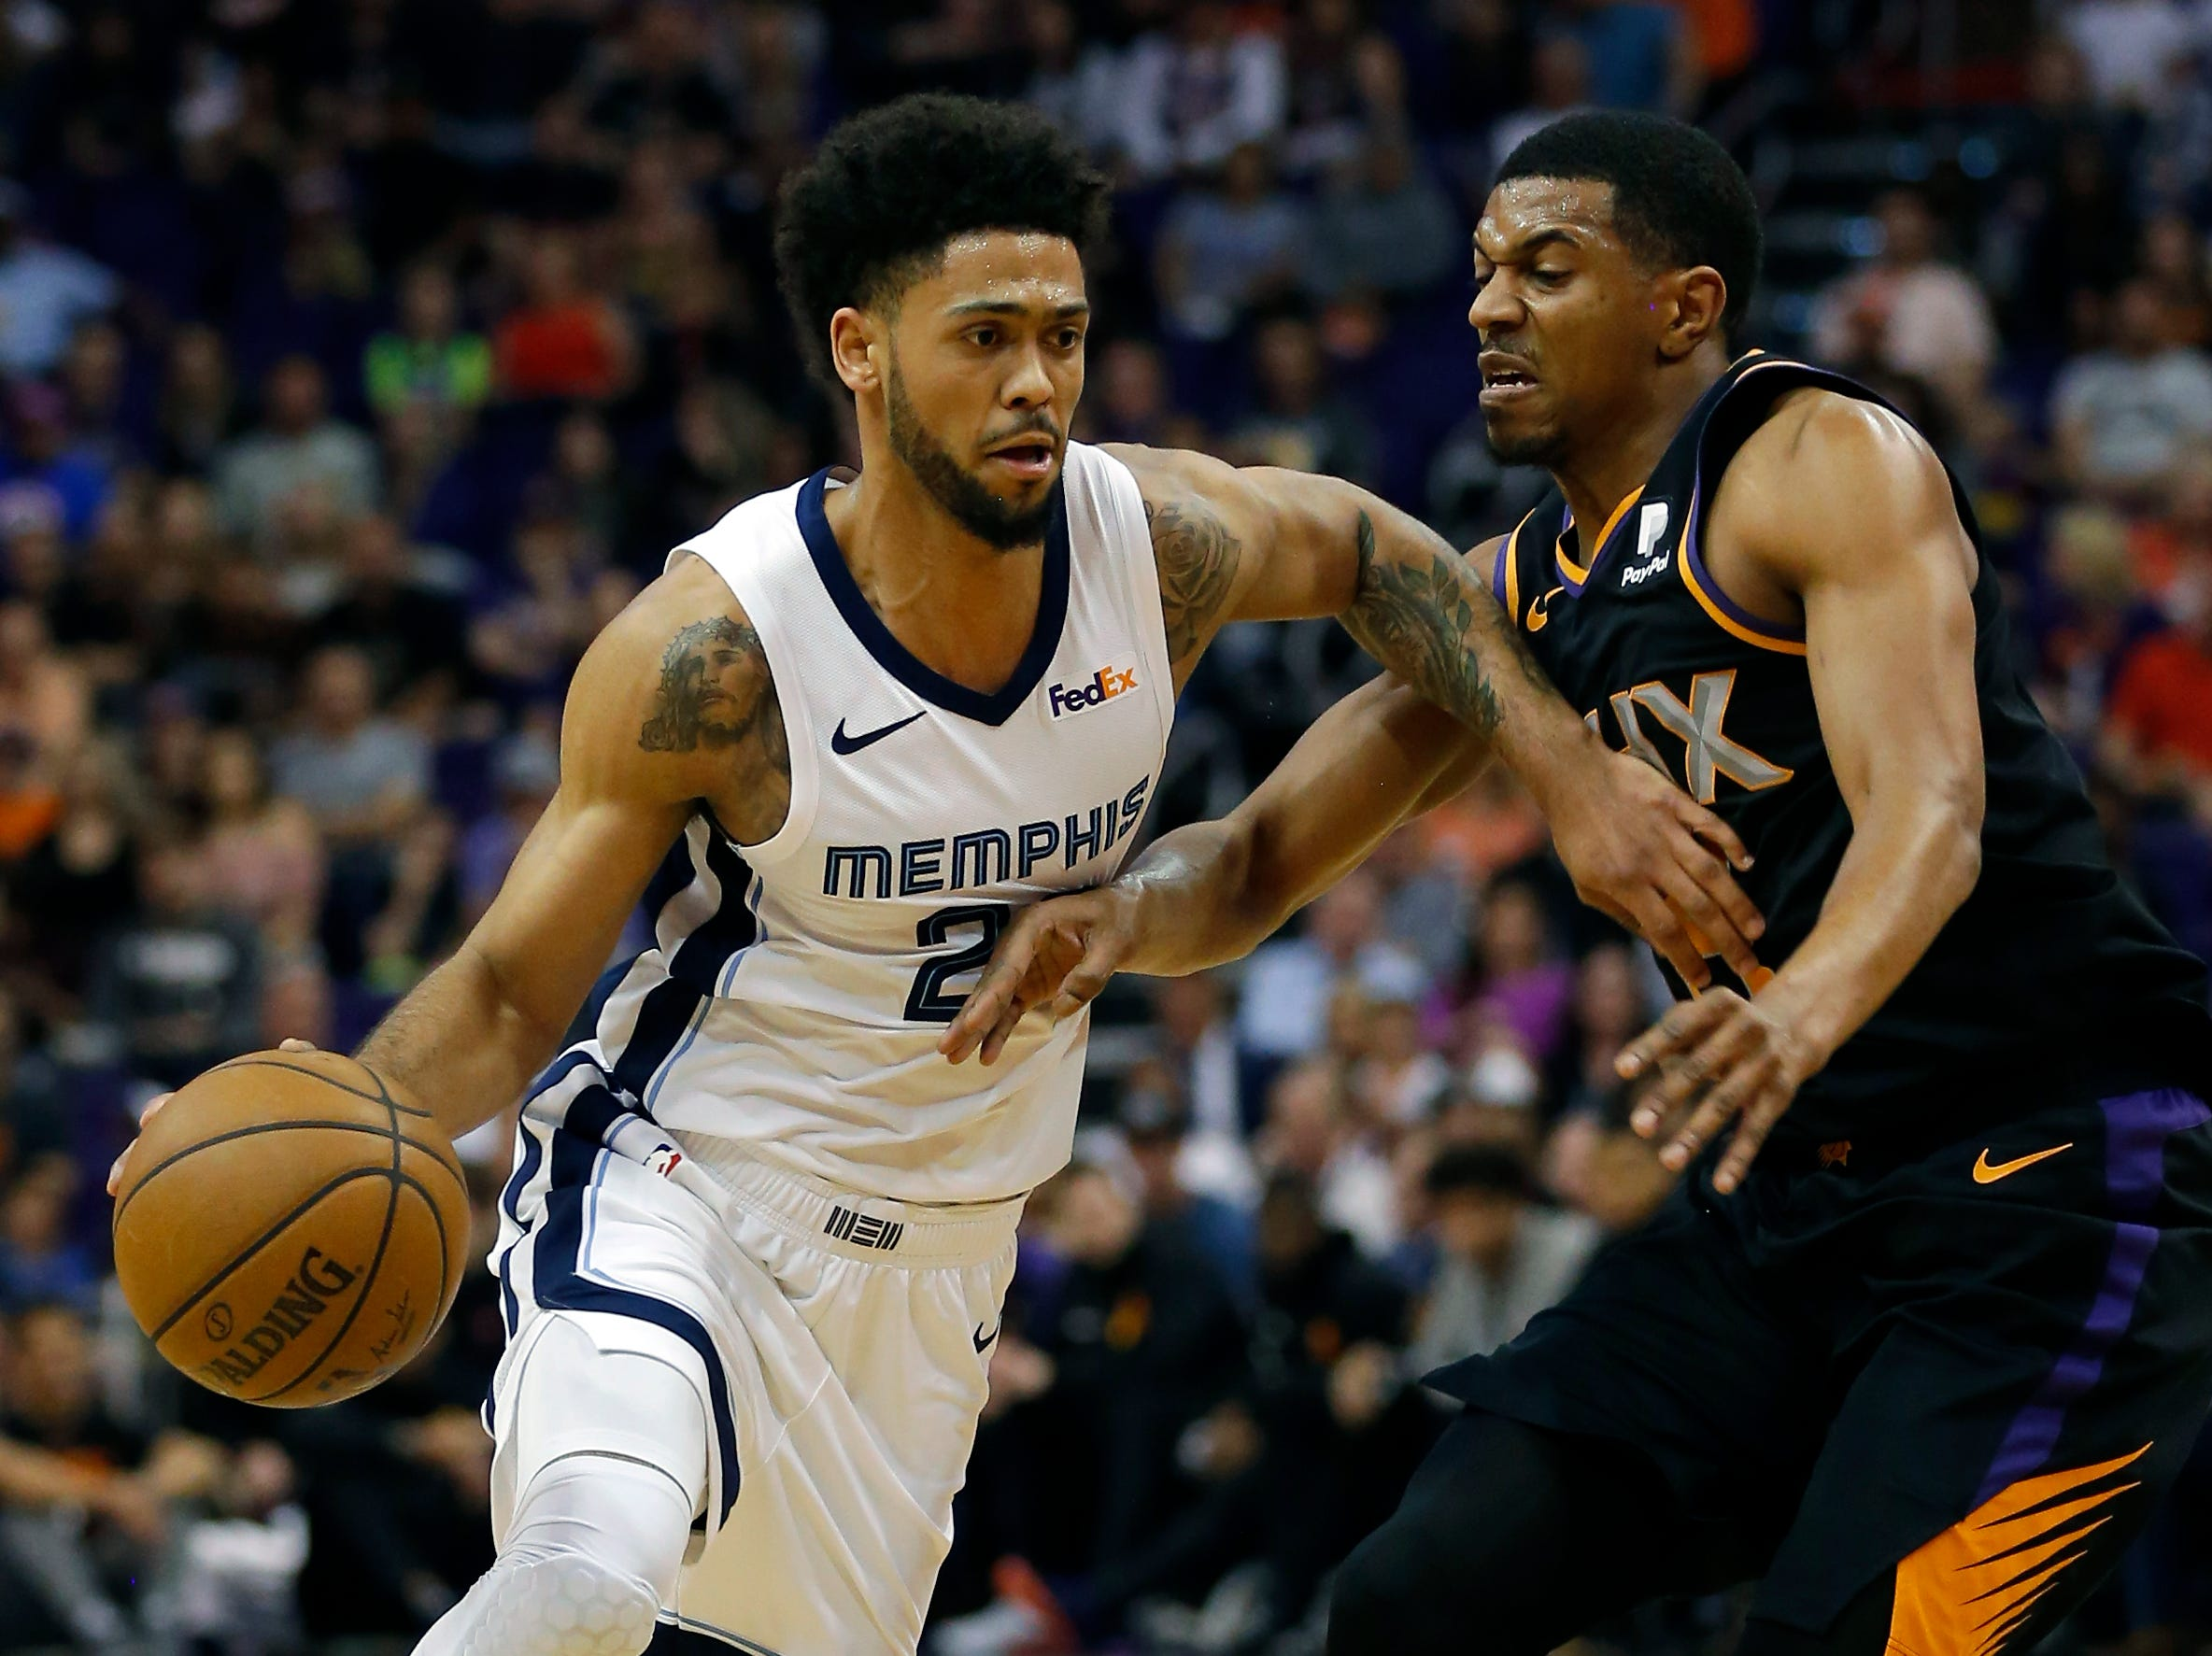 Memphis Grizzlies guard Tyler Dorsey, left, drives on Phoenix Suns guard De'Anthony Melton, right, in the first half during an NBA basketball game, Saturday, March 30, 2019, in Phoenix. (AP Photo/Rick Scuteri)